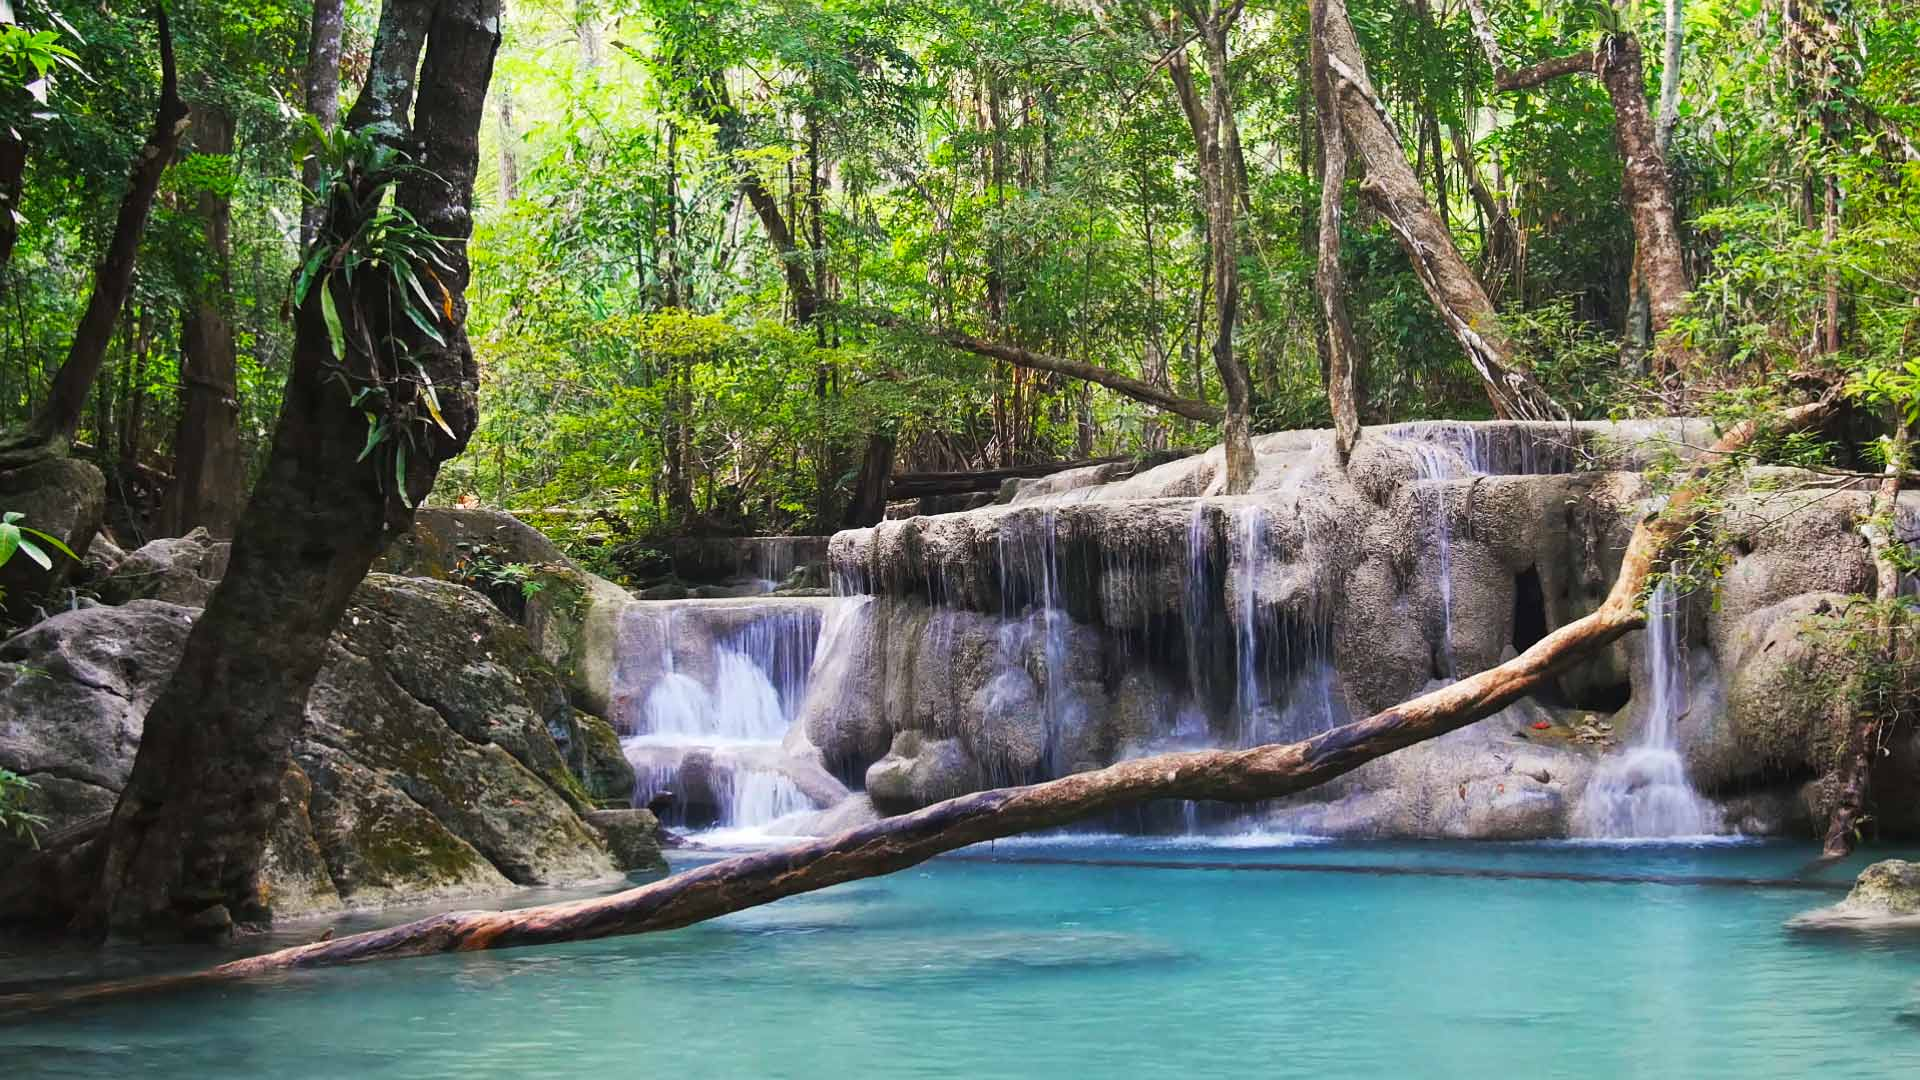 Thailand_Waterfall_FF_768_HD_EN-US1842907882.jpg